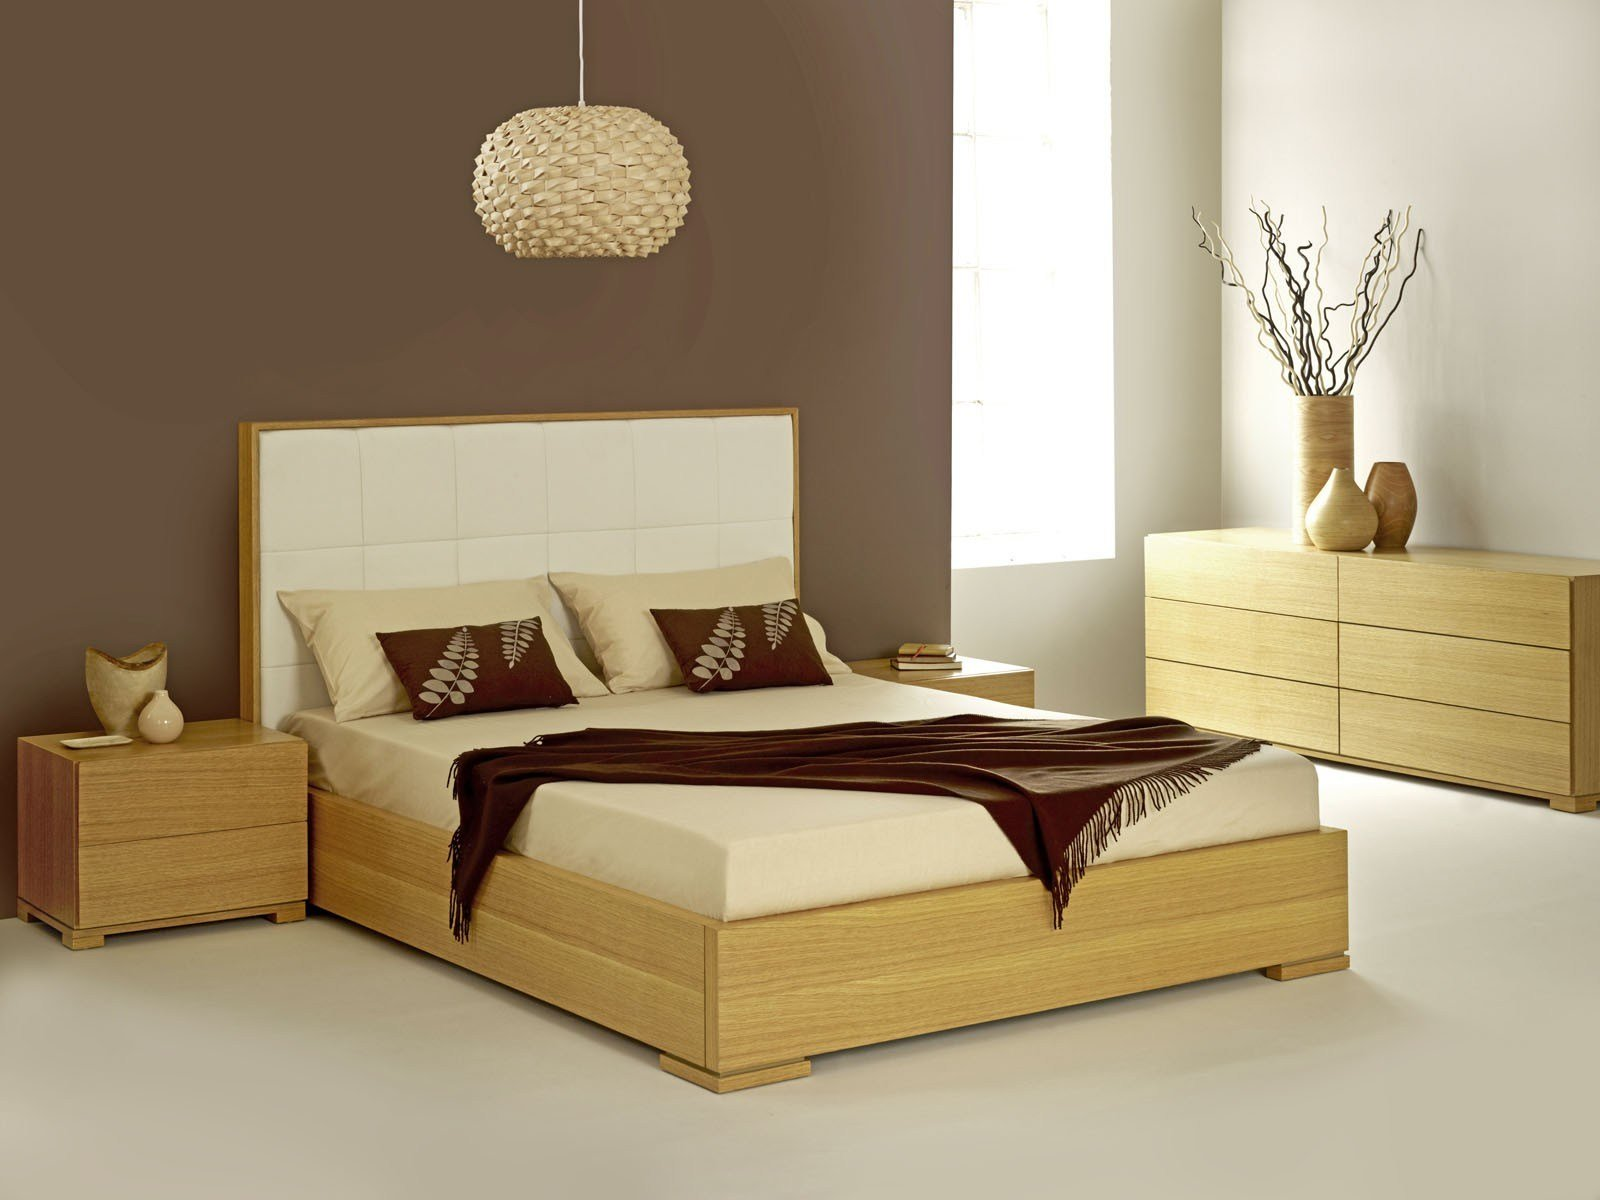 Best What Is The Best Color For Bedroom With White Tile Floor With Pictures